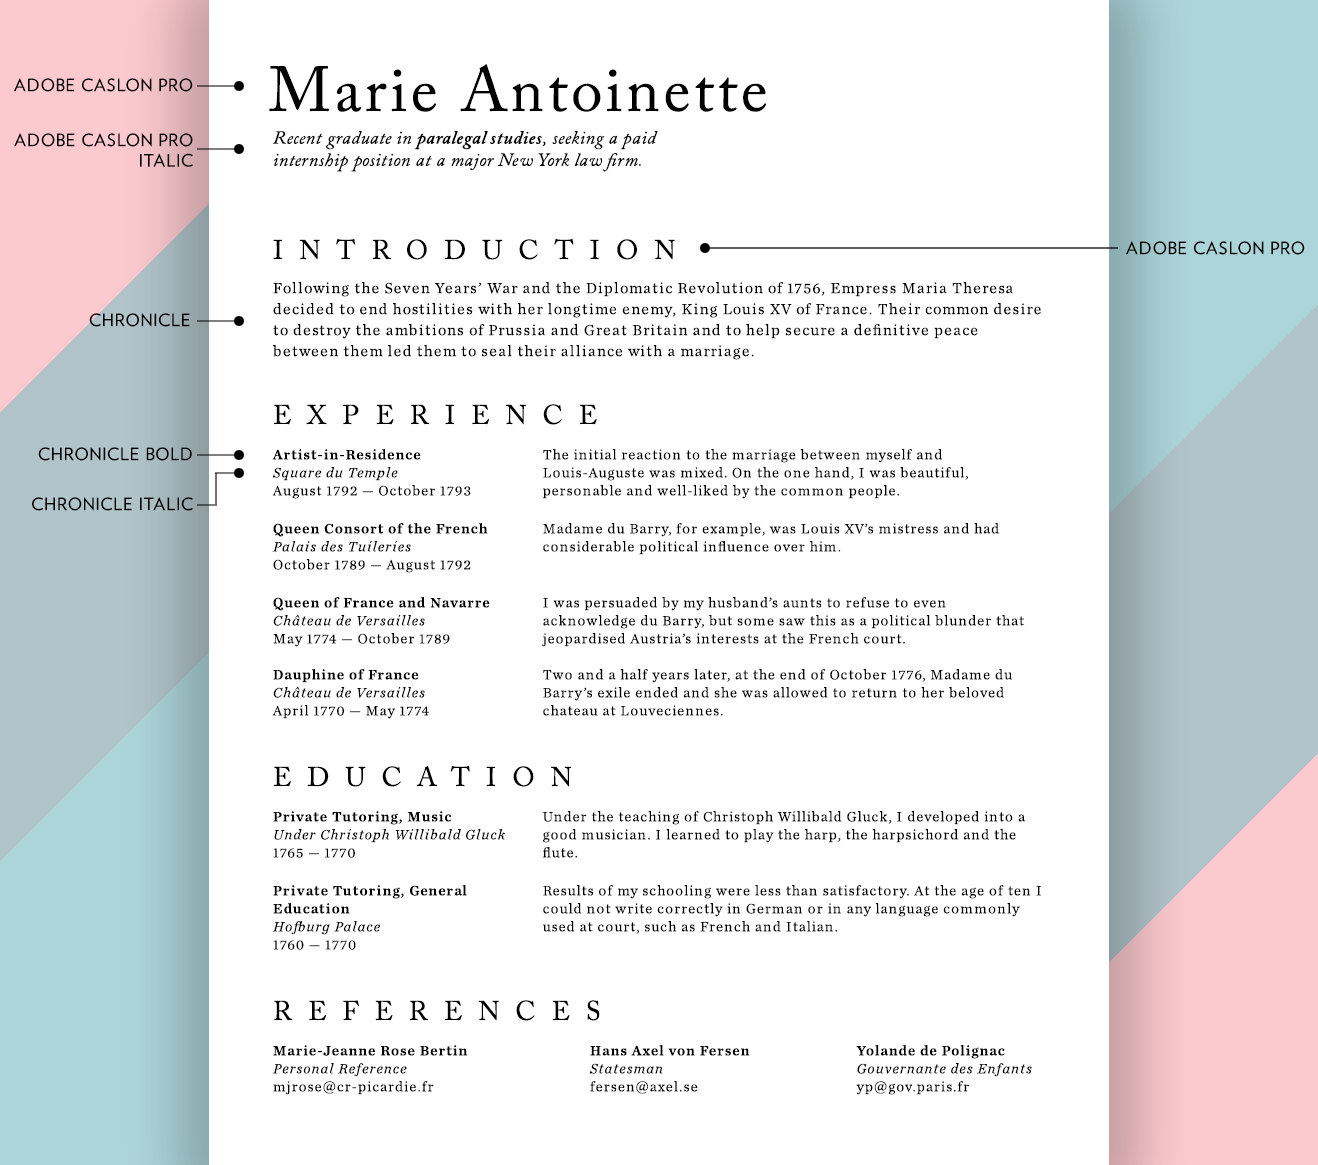 Superior Geometric Sans Serif Fonts Inside Font To Use For Resume